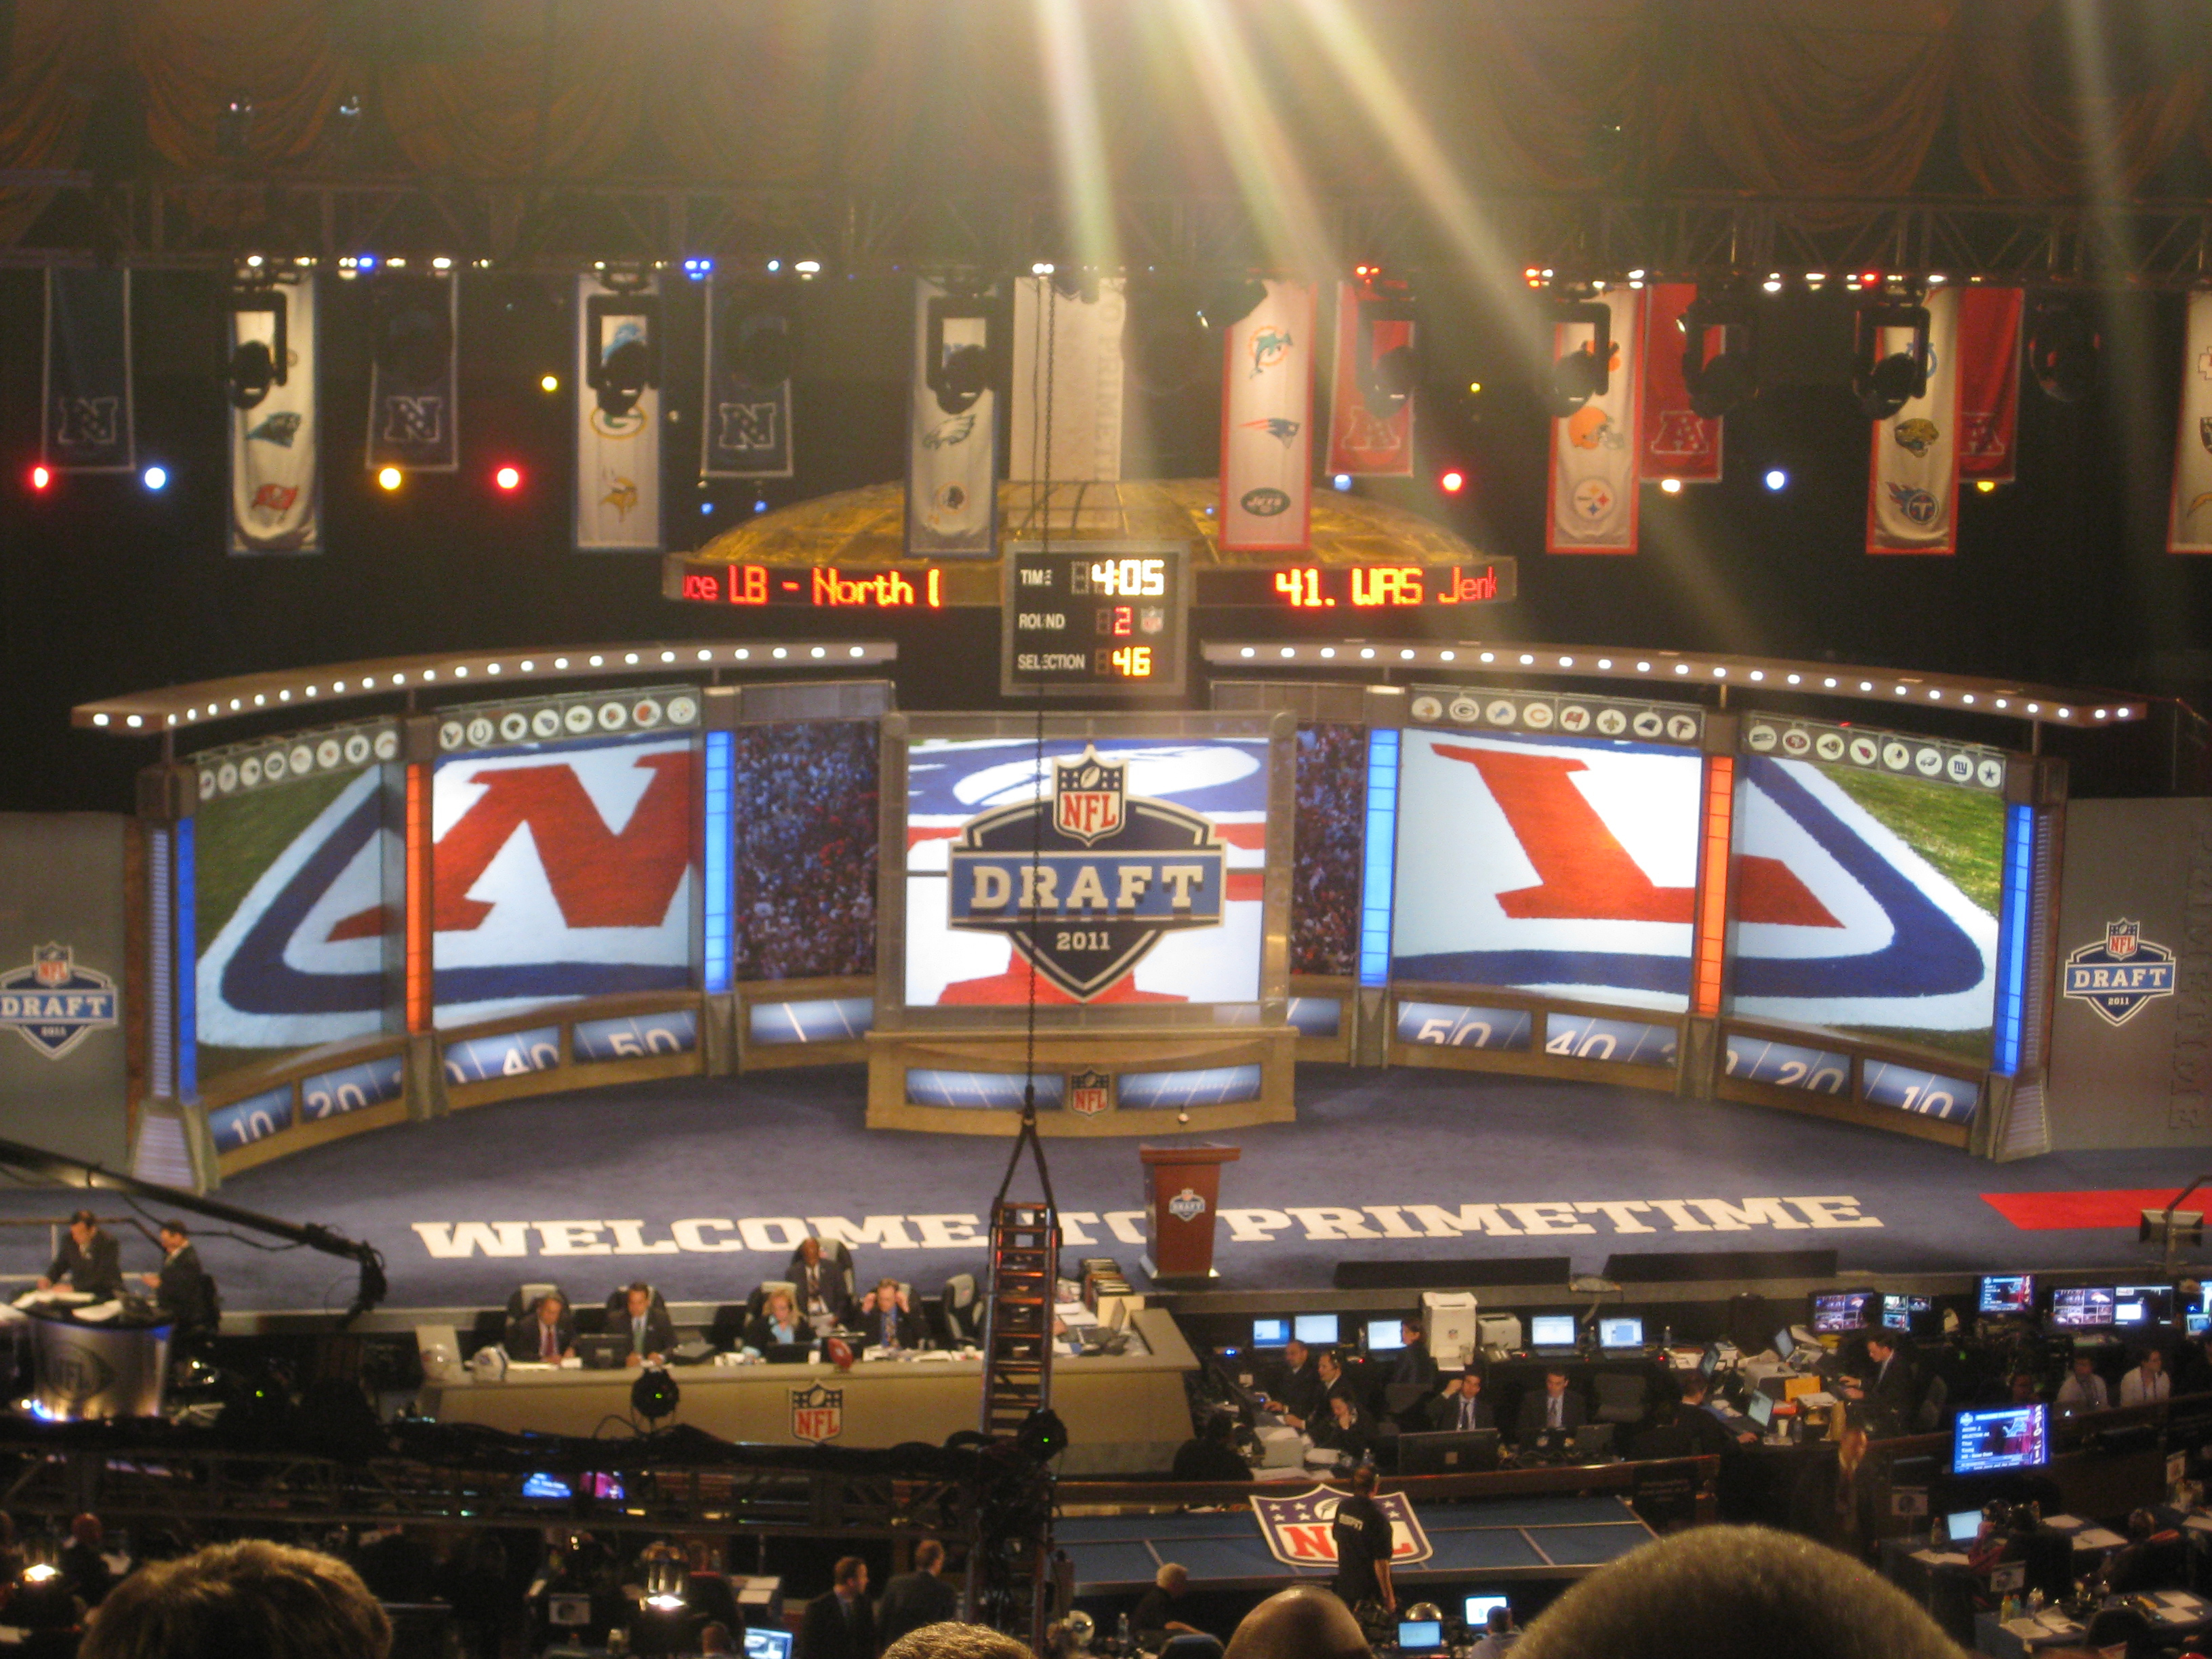 The stage at the NFL Draft, where wide-eyed college football stars learn their fate in the professional league. (credit: Courtesy of Marques Stewart via Flickr Creative Commons)